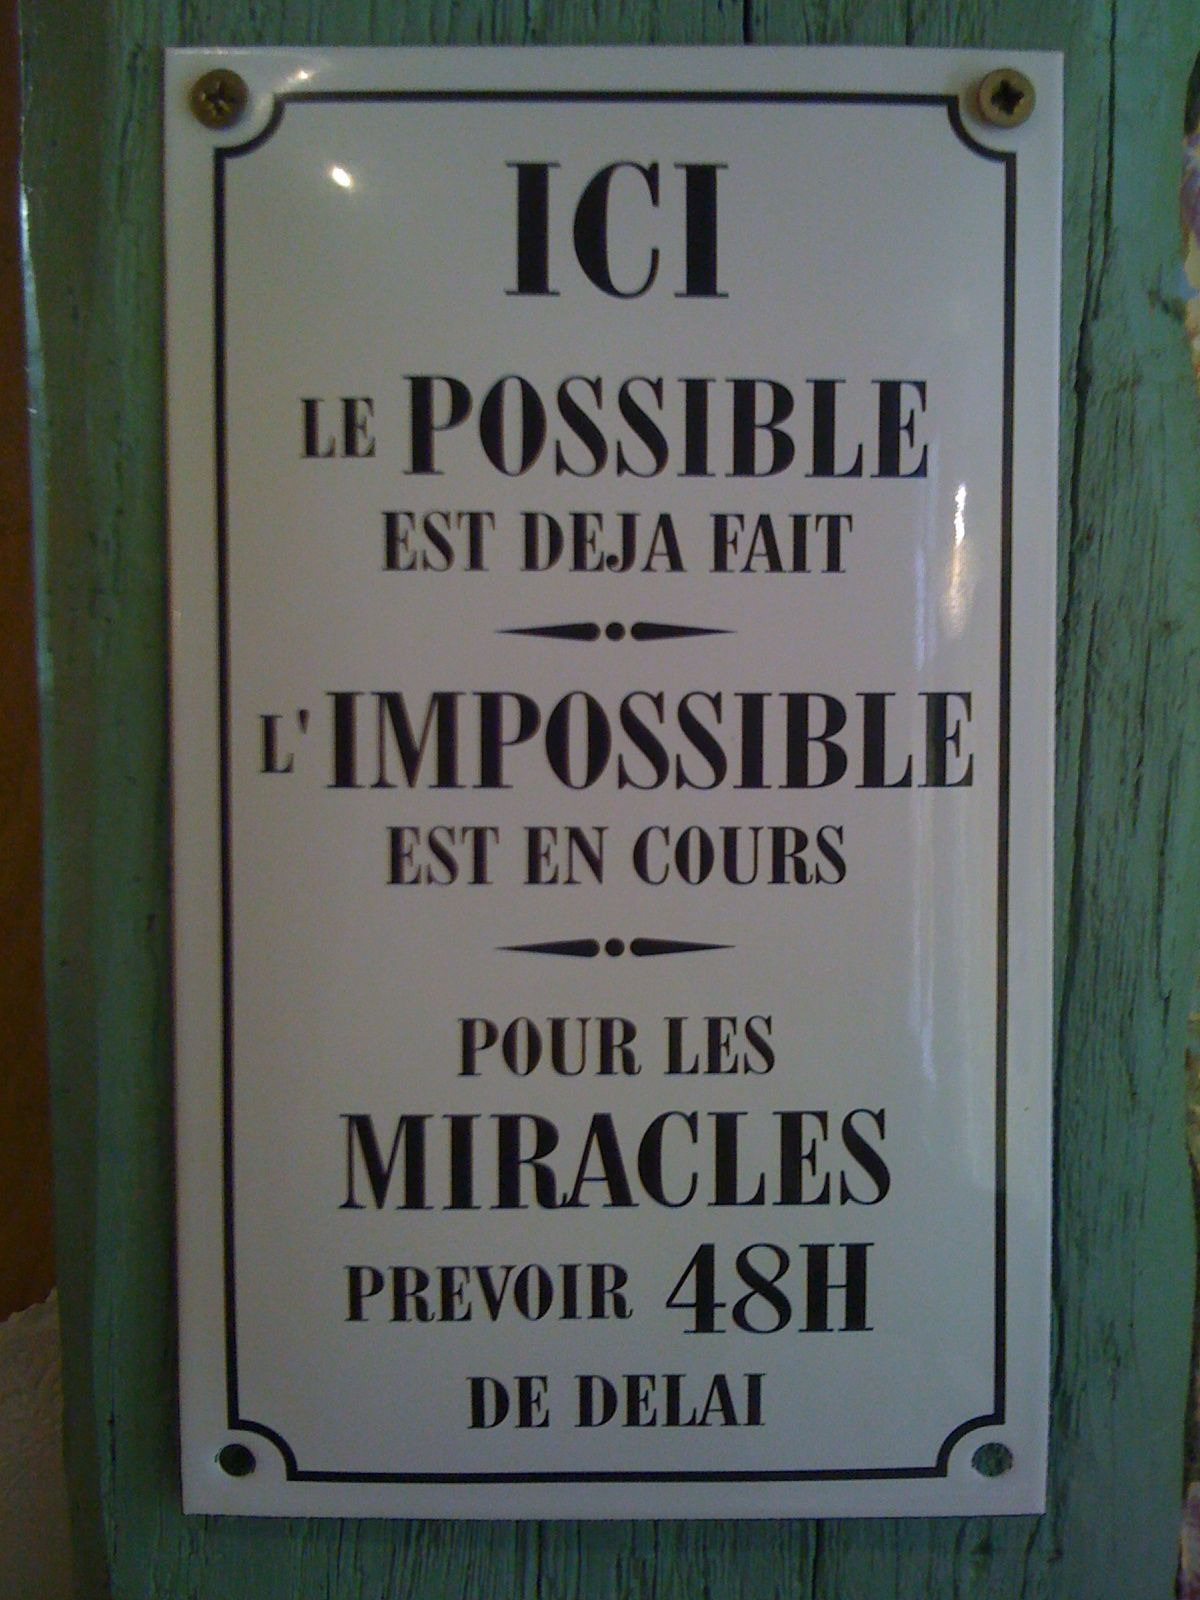 Here, the possible has already been done/  The Impossible is in process/  For Miracles plan a 48 hours delay/    From a french creperie in Normandy